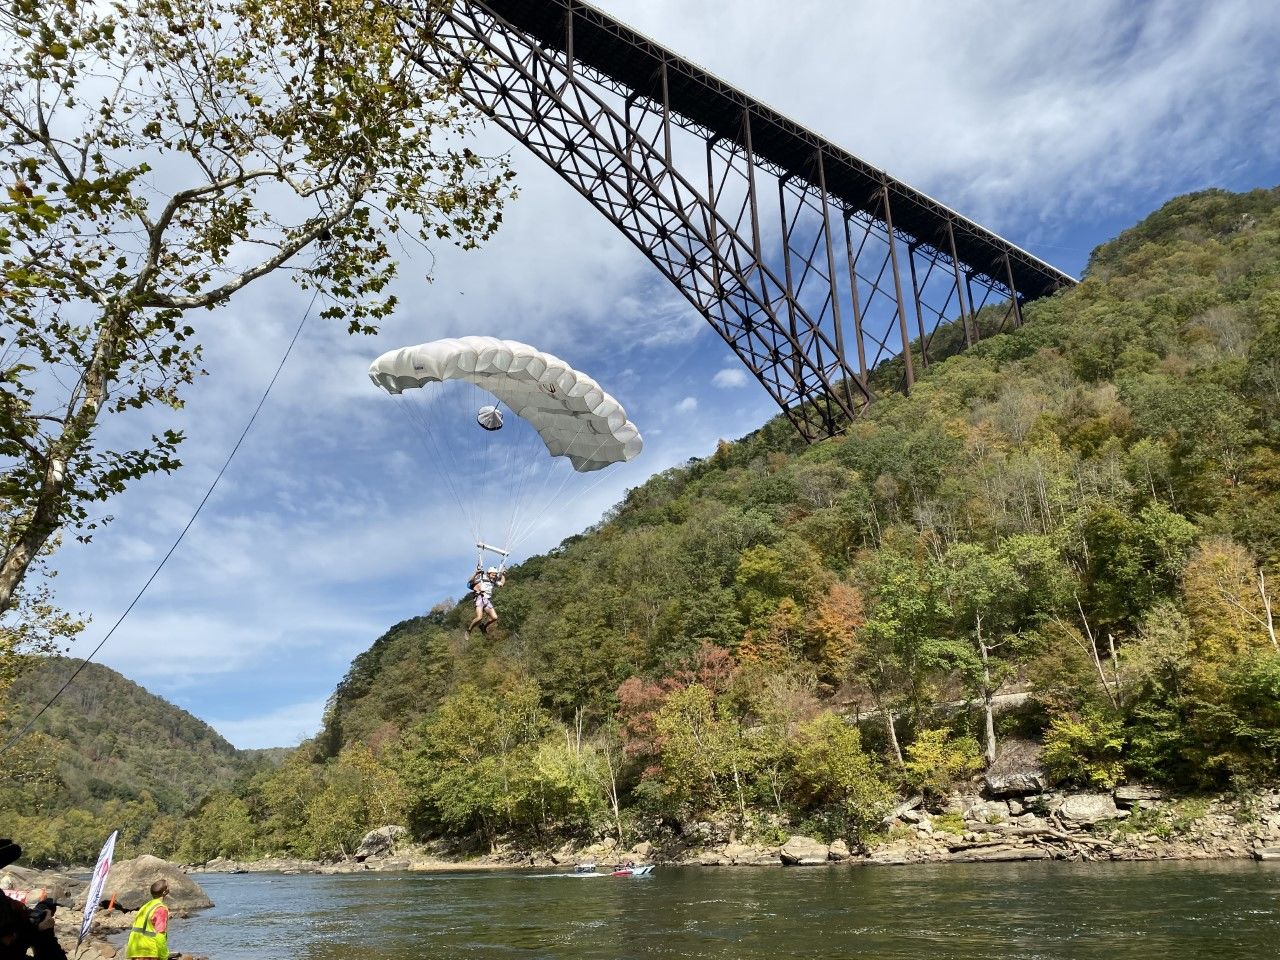 Hundreds of daredevils plunged more than 870ft into the gorge. (WCHS/WVAH)